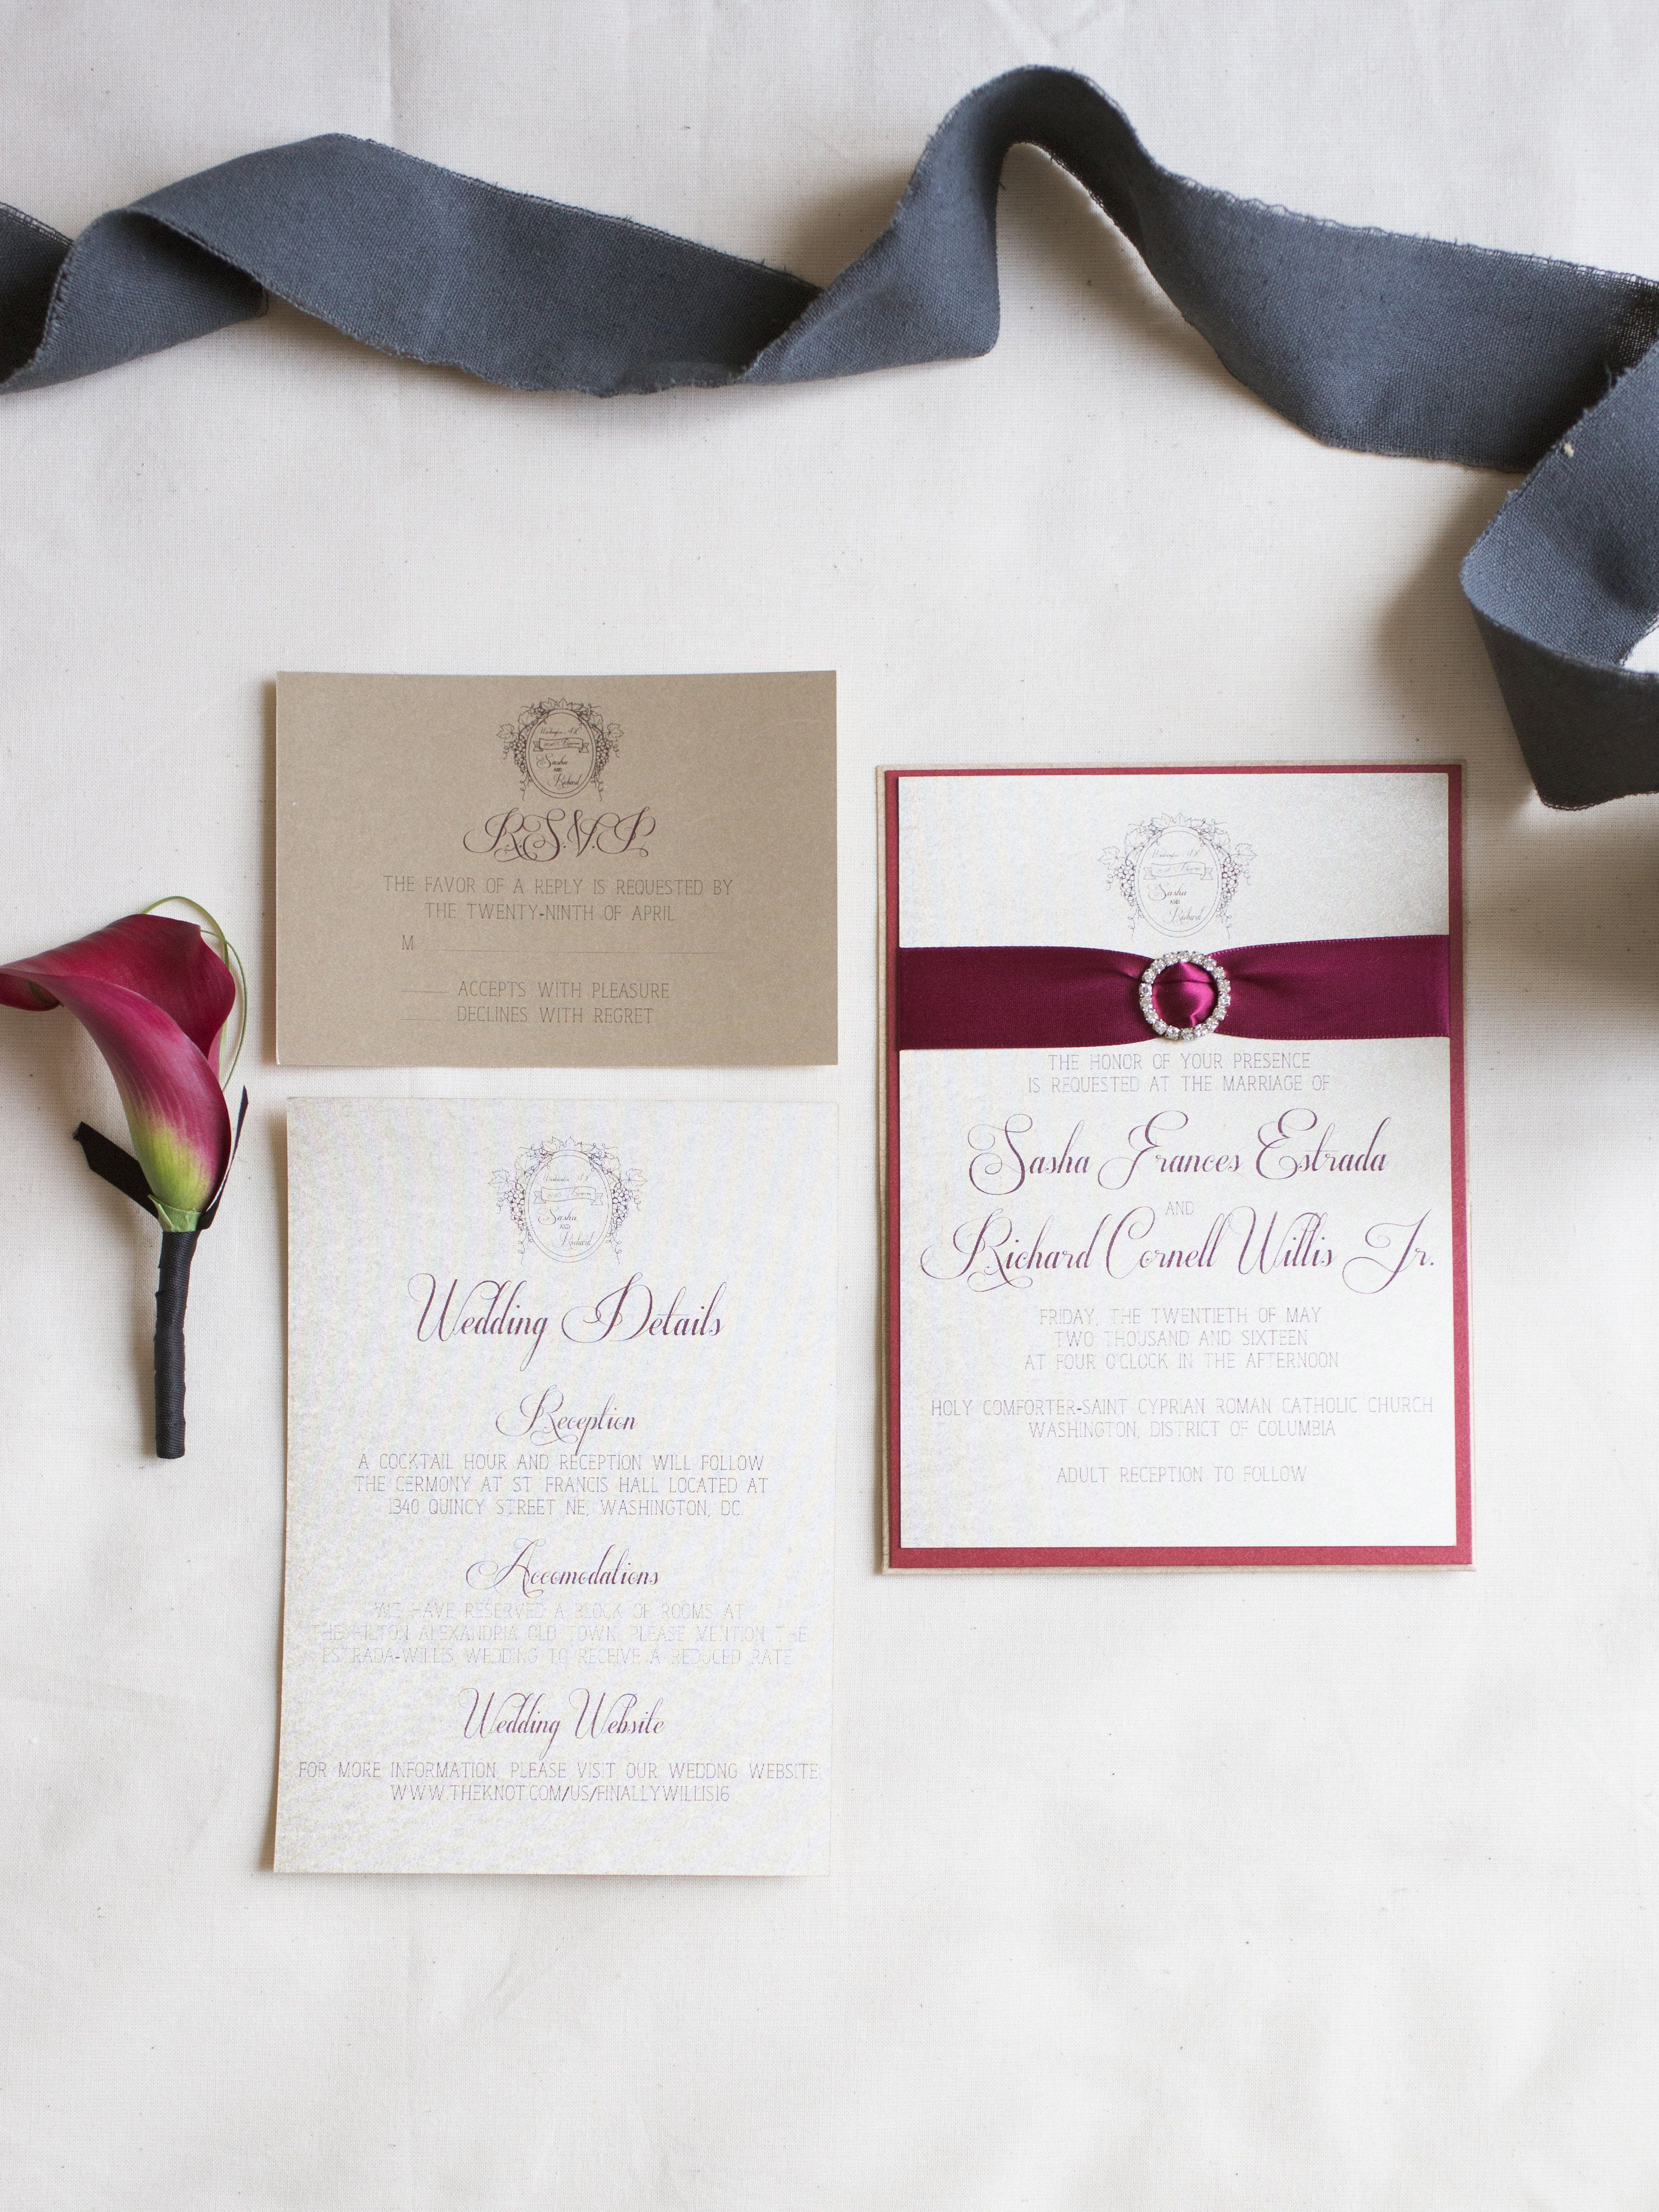 Wedding Stationery: Invitation Trends for 2017 - | Pinterest | Real ...